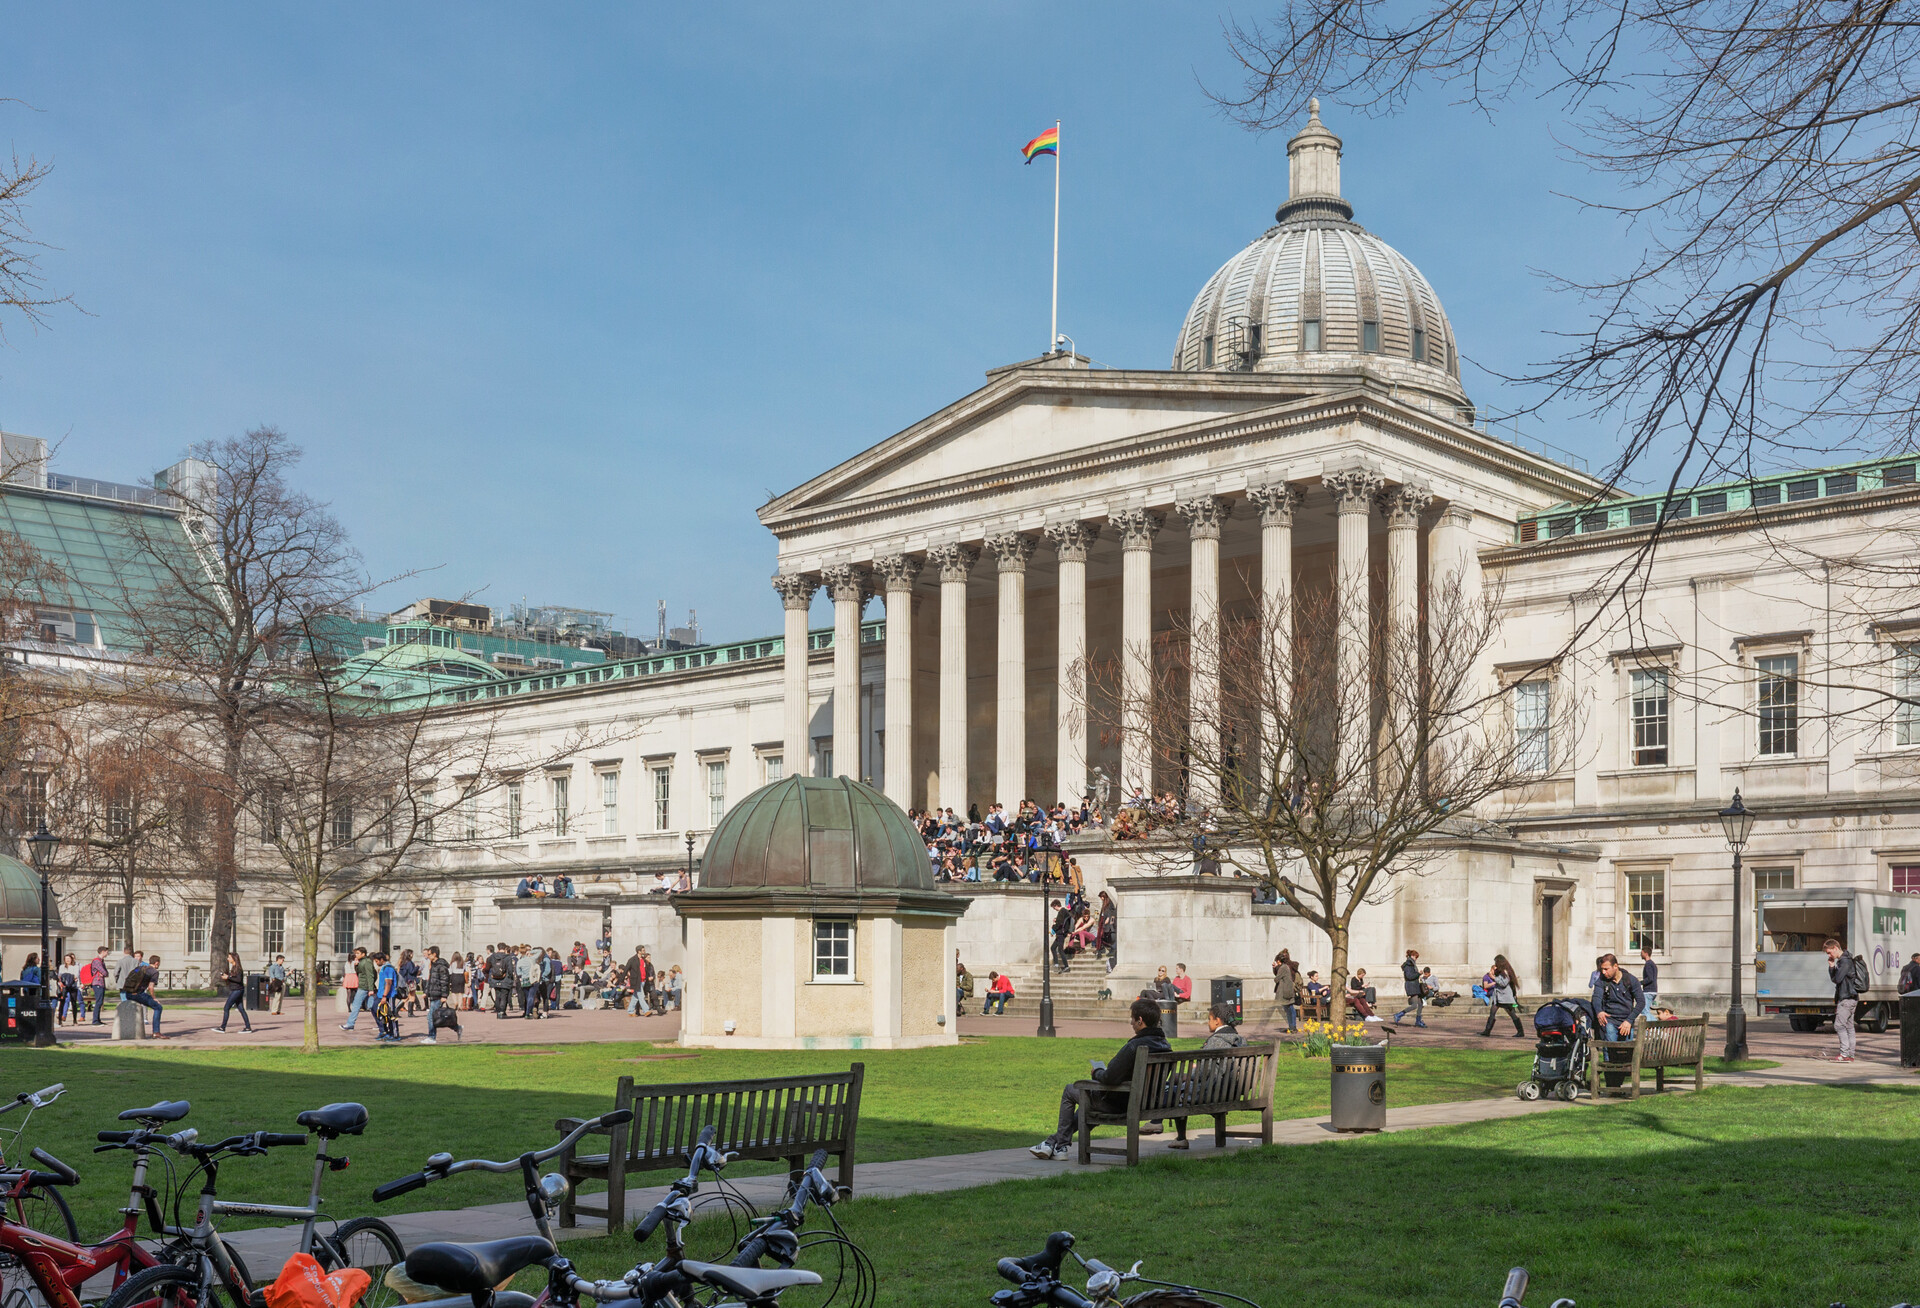 Angelica's experience at University College London, UK